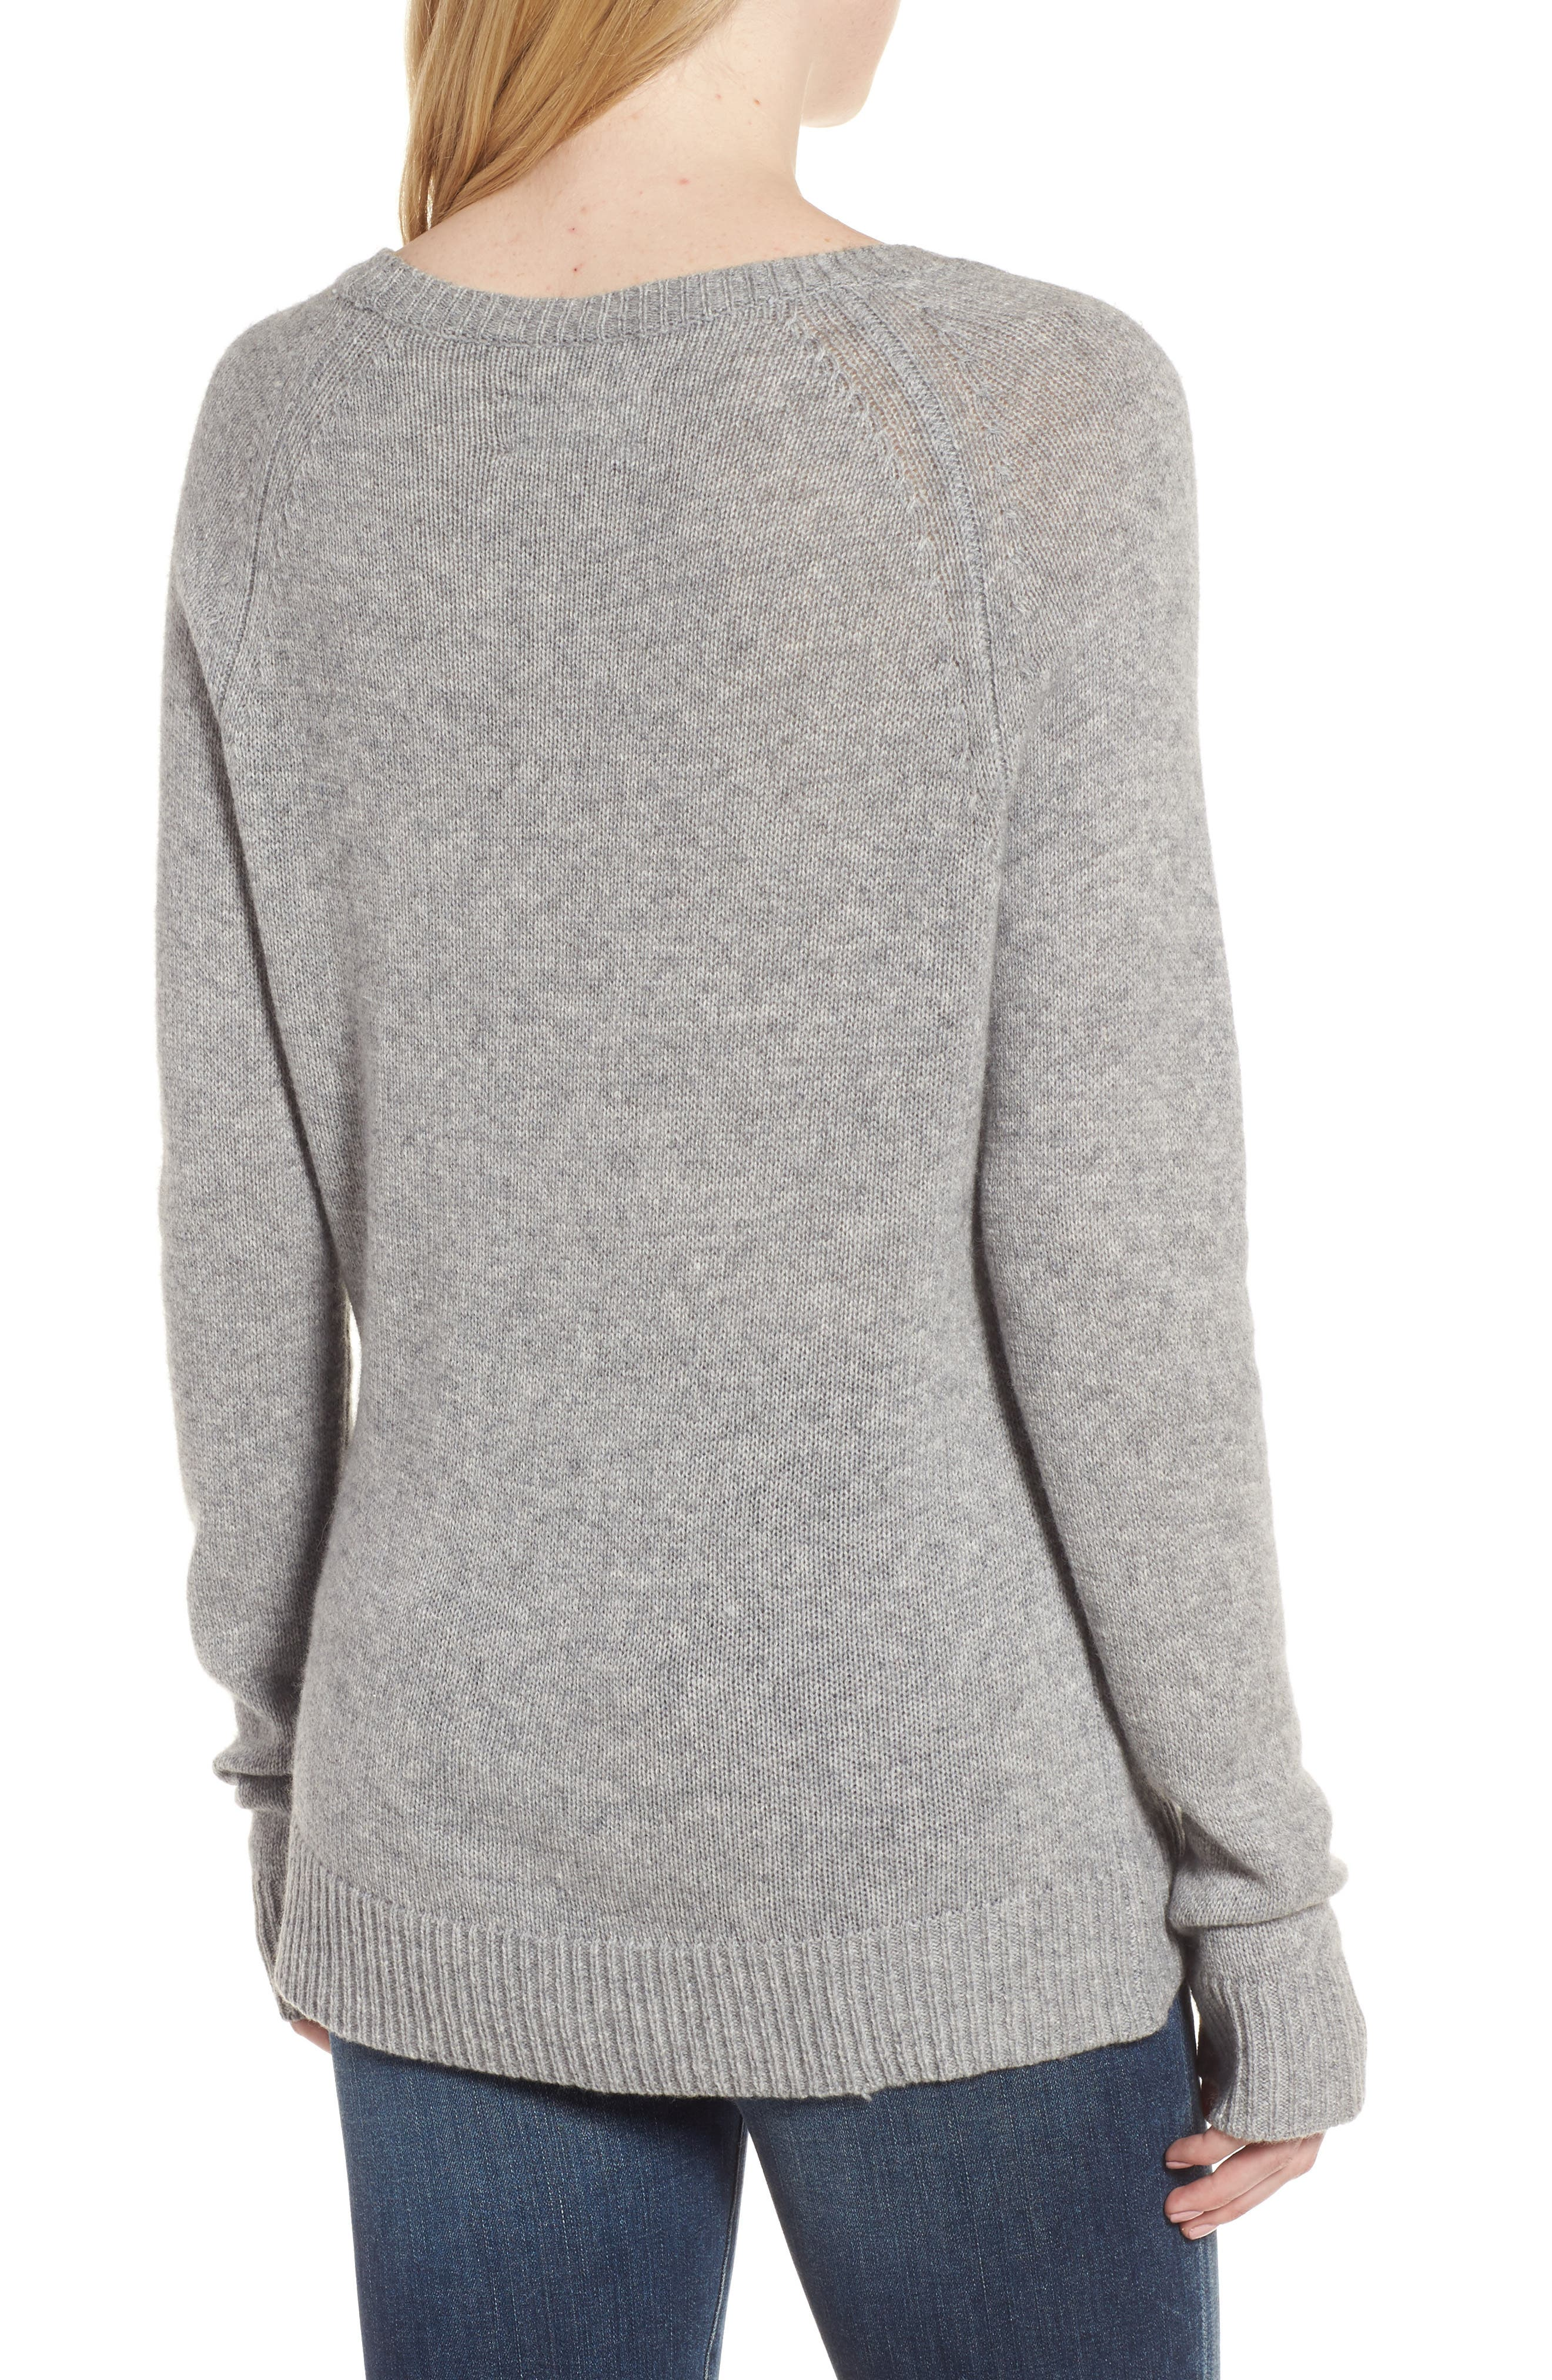 Baly Bis Cashmere Sweater,                             Alternate thumbnail 2, color,